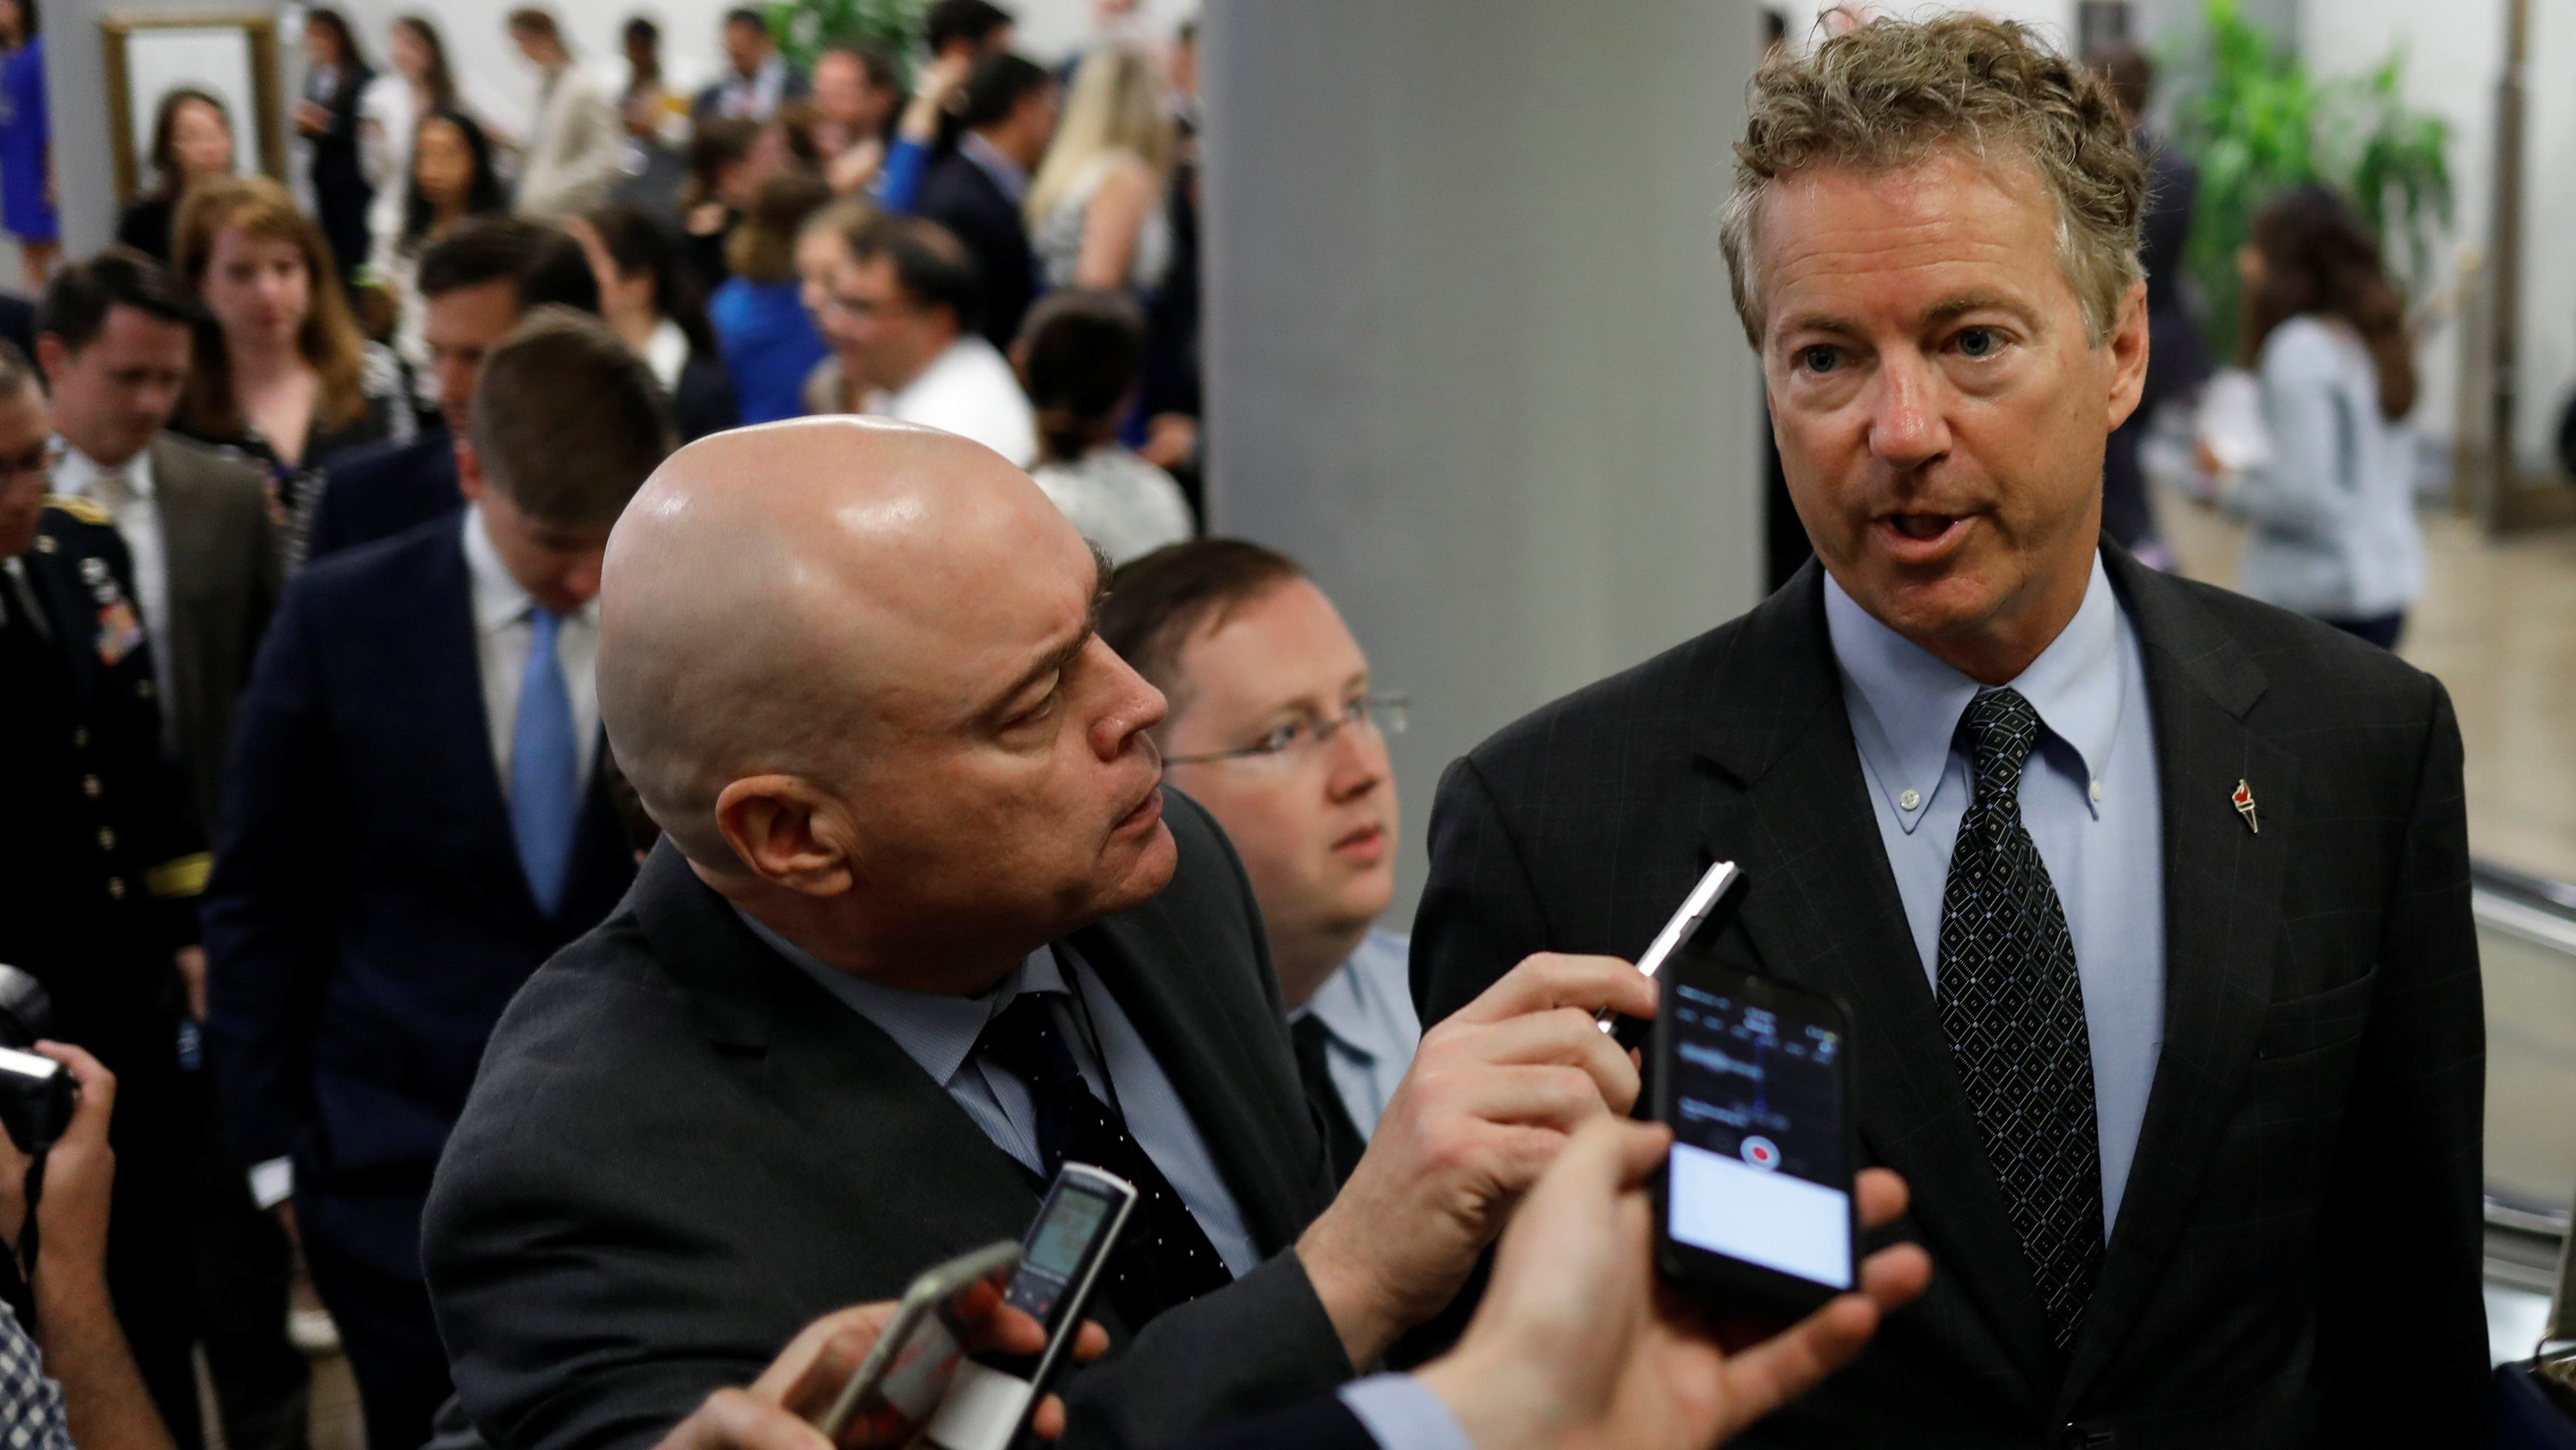 Senator Rand Paul (R-KY) speaks with reporters about the withdrawn Republican health care bill on Capitol Hill in Washington, U.S., July 18, 2017. REUTERS/Aaron P. Bernstein - RTX3BYNZ